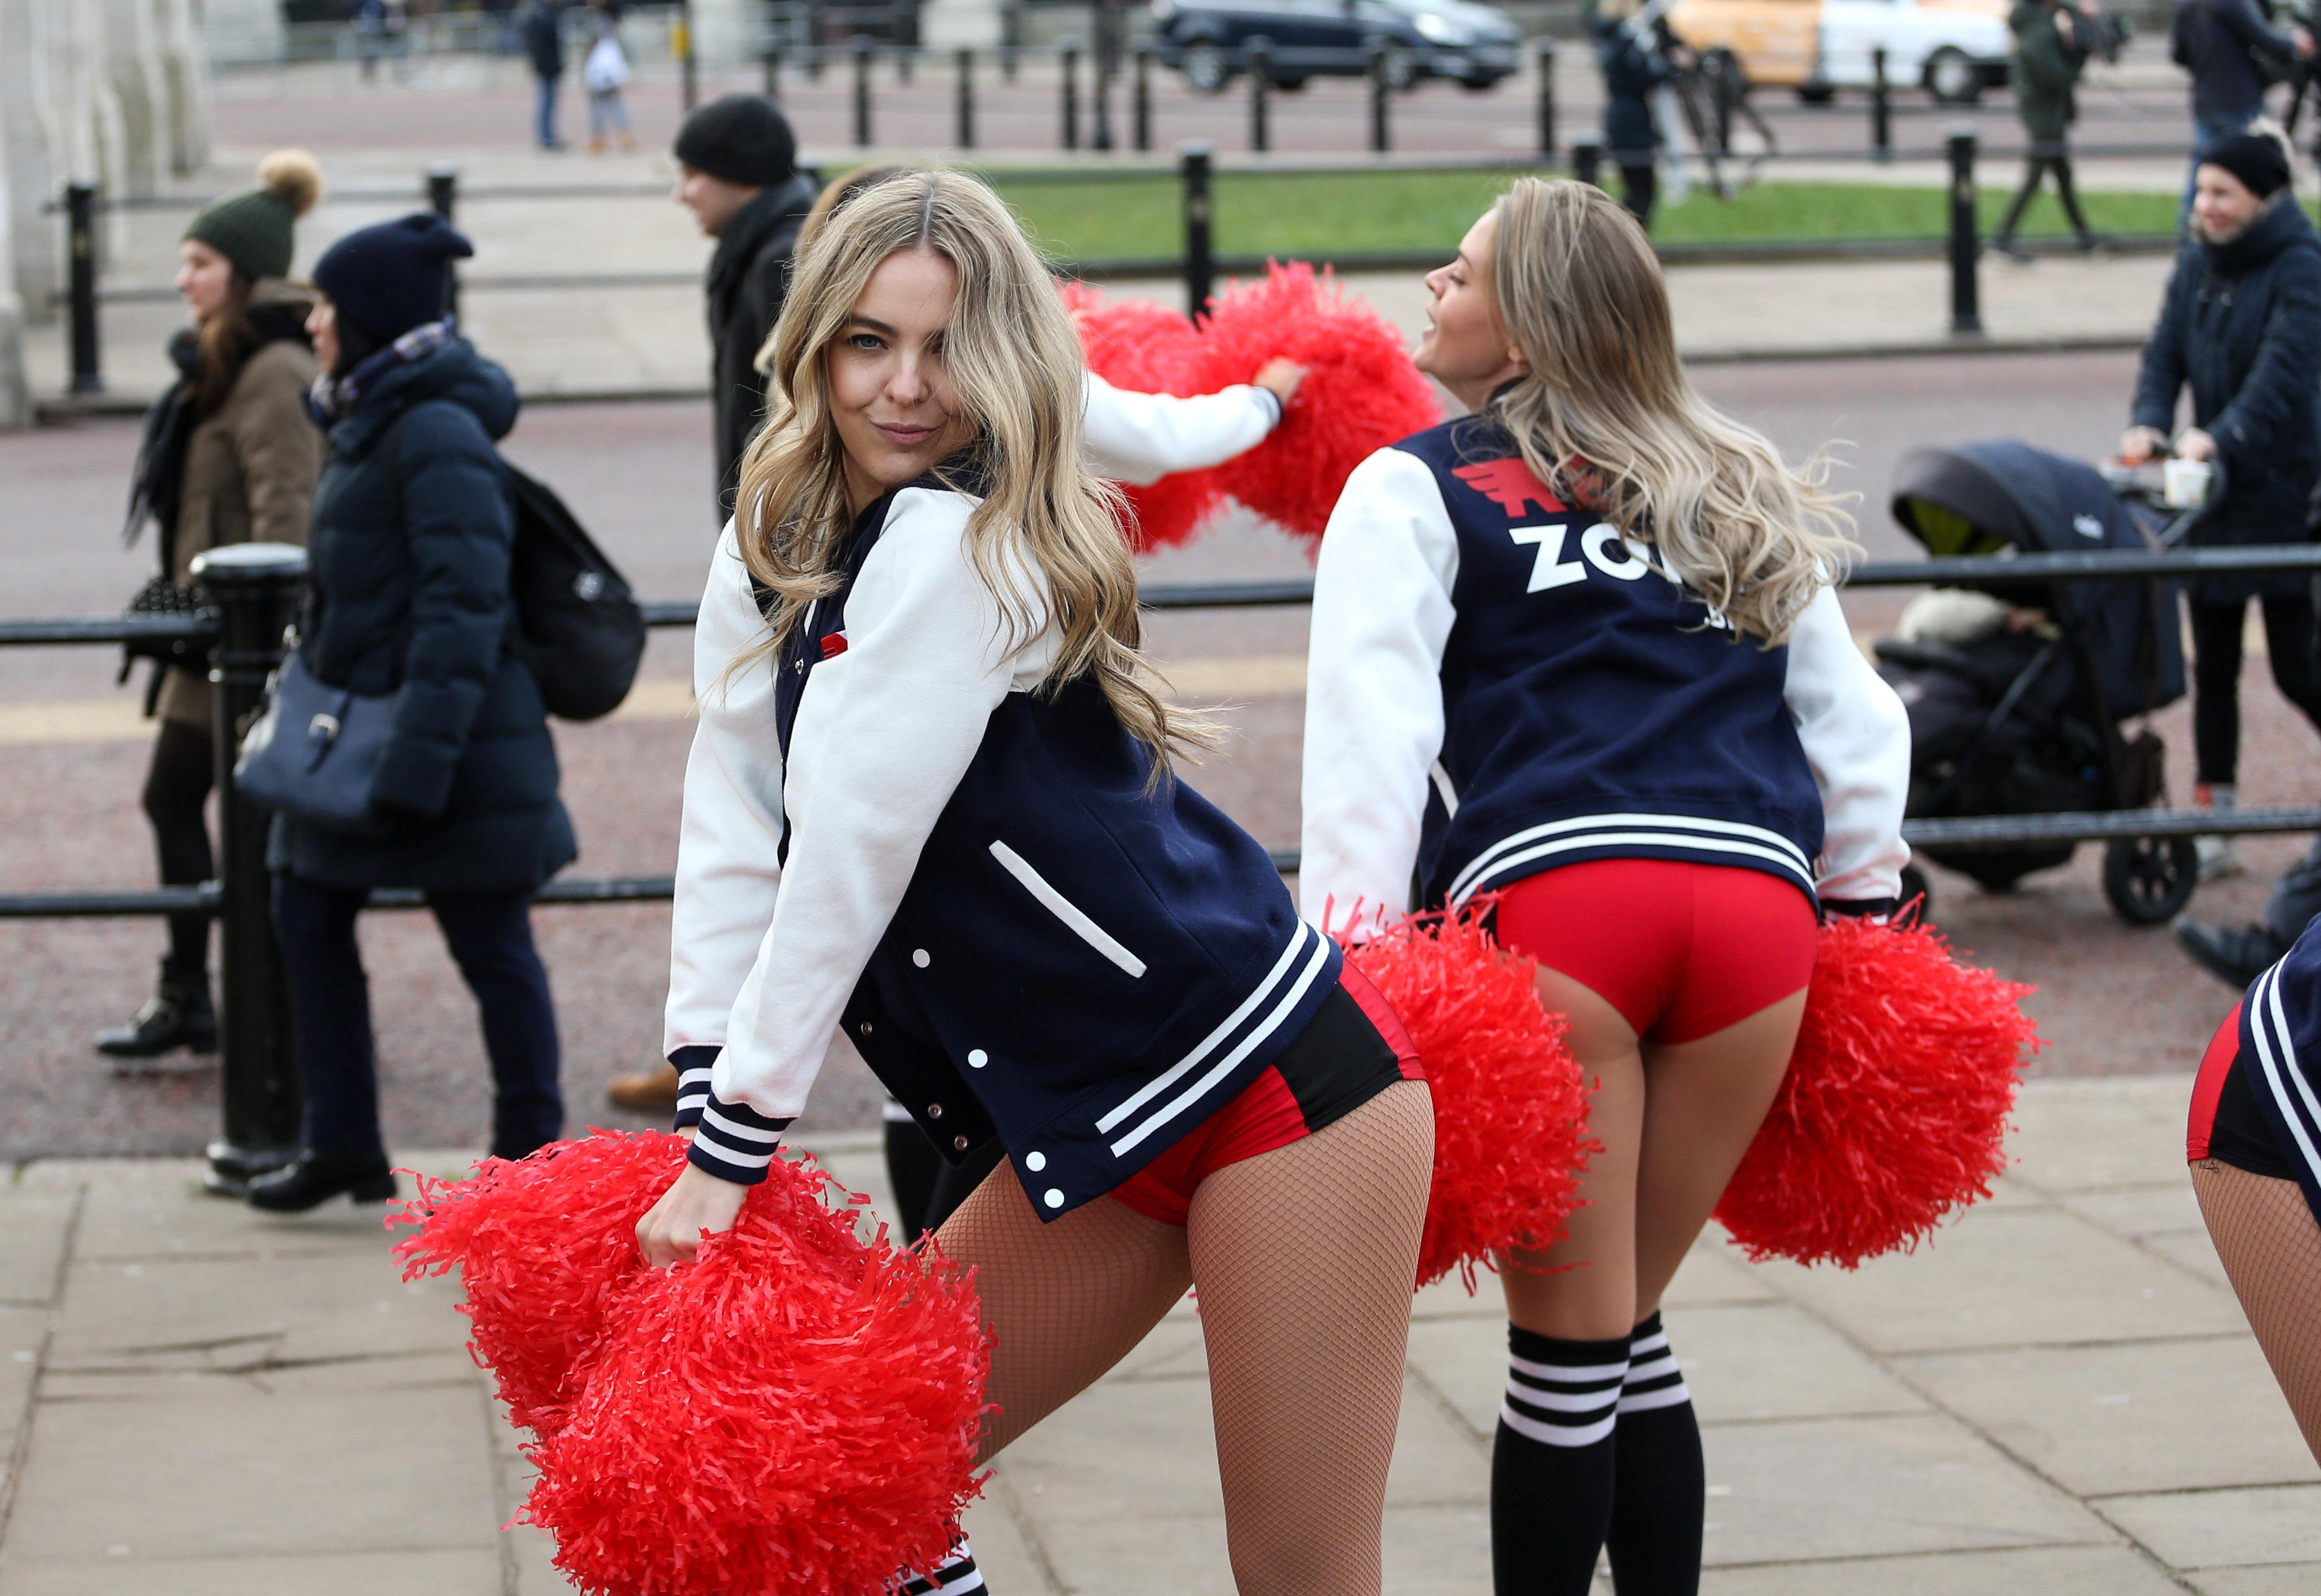 Cheerleaders whip Brits up into a frenzy in London